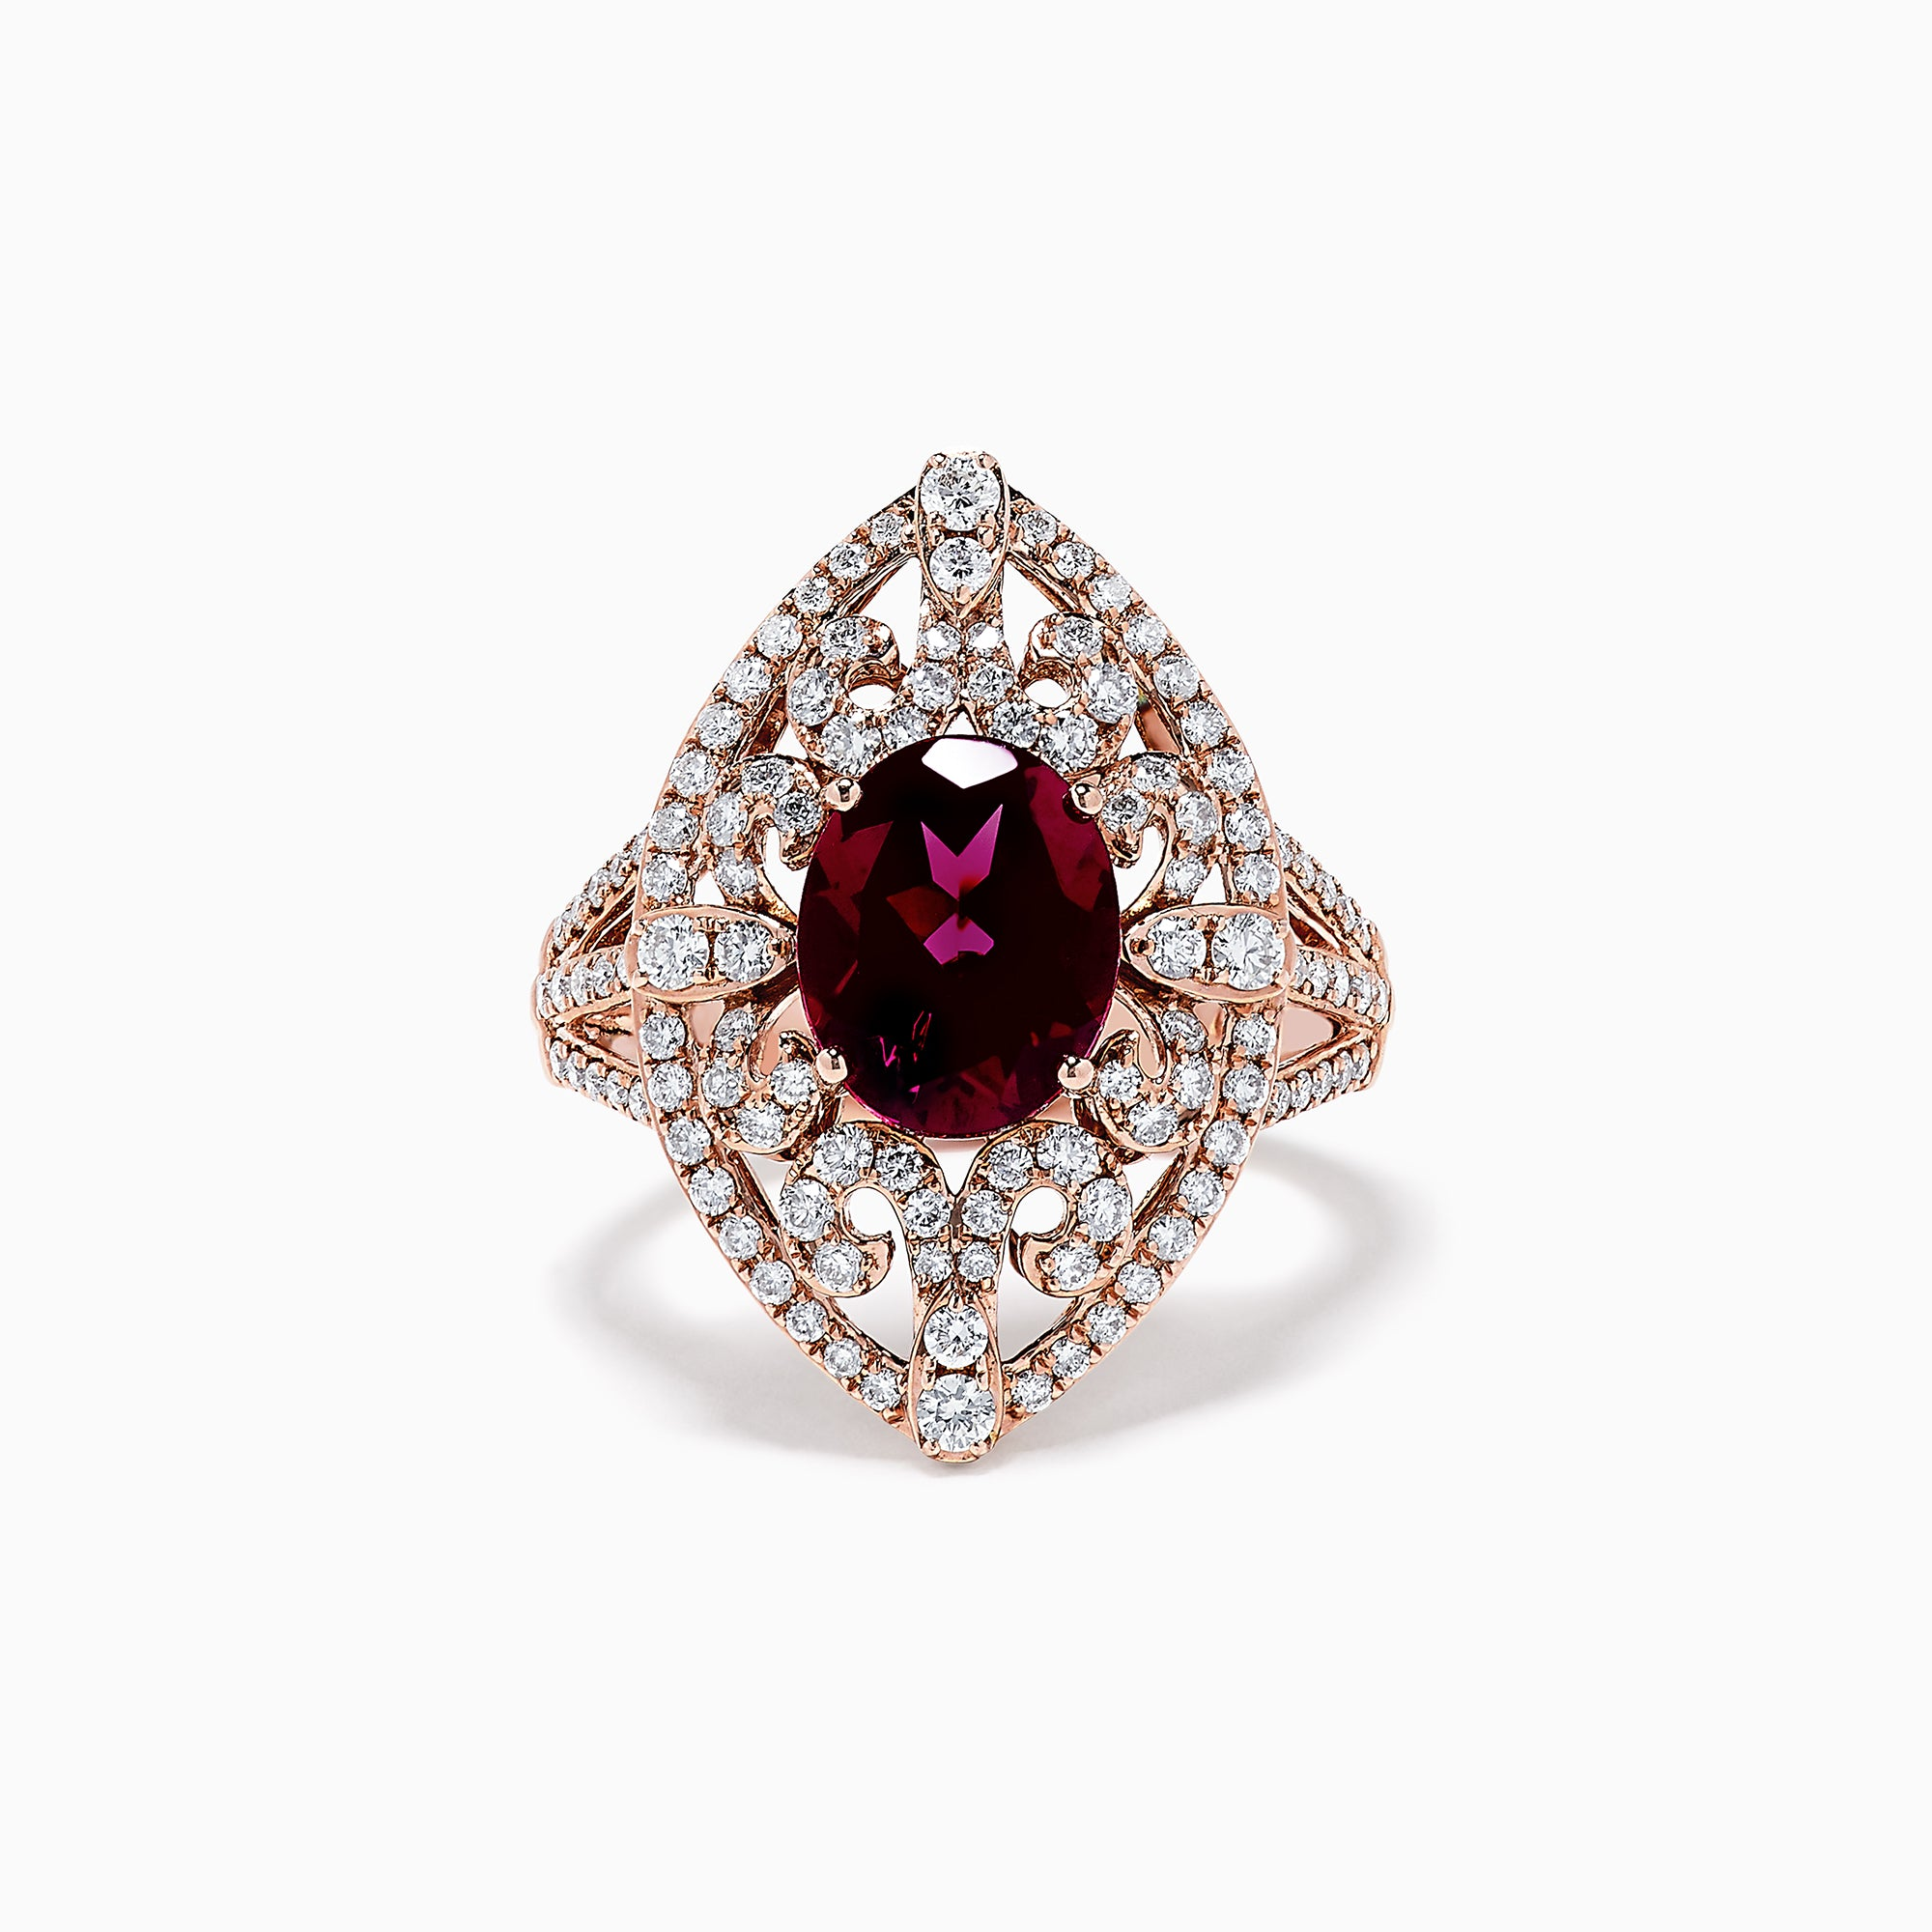 Effy 14K Rose Gold Rhodolite and Diamond Ring, 3.83 TCW